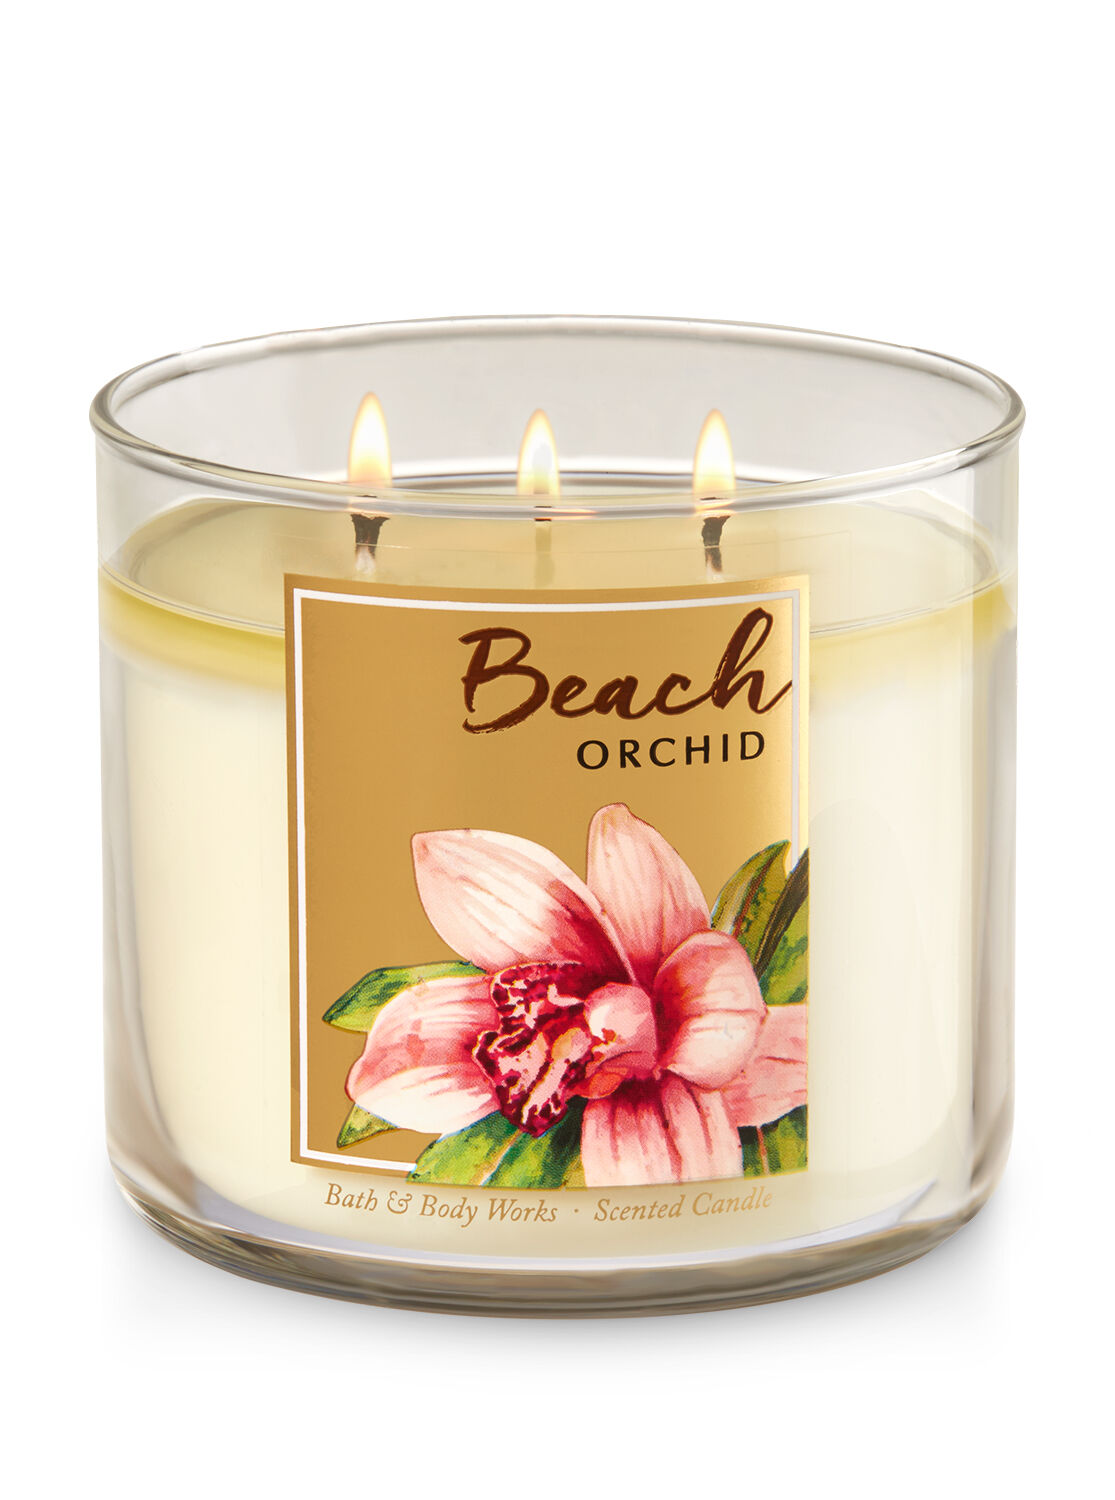 Beach Orchid 3 Wick Candle Bath And Body Works